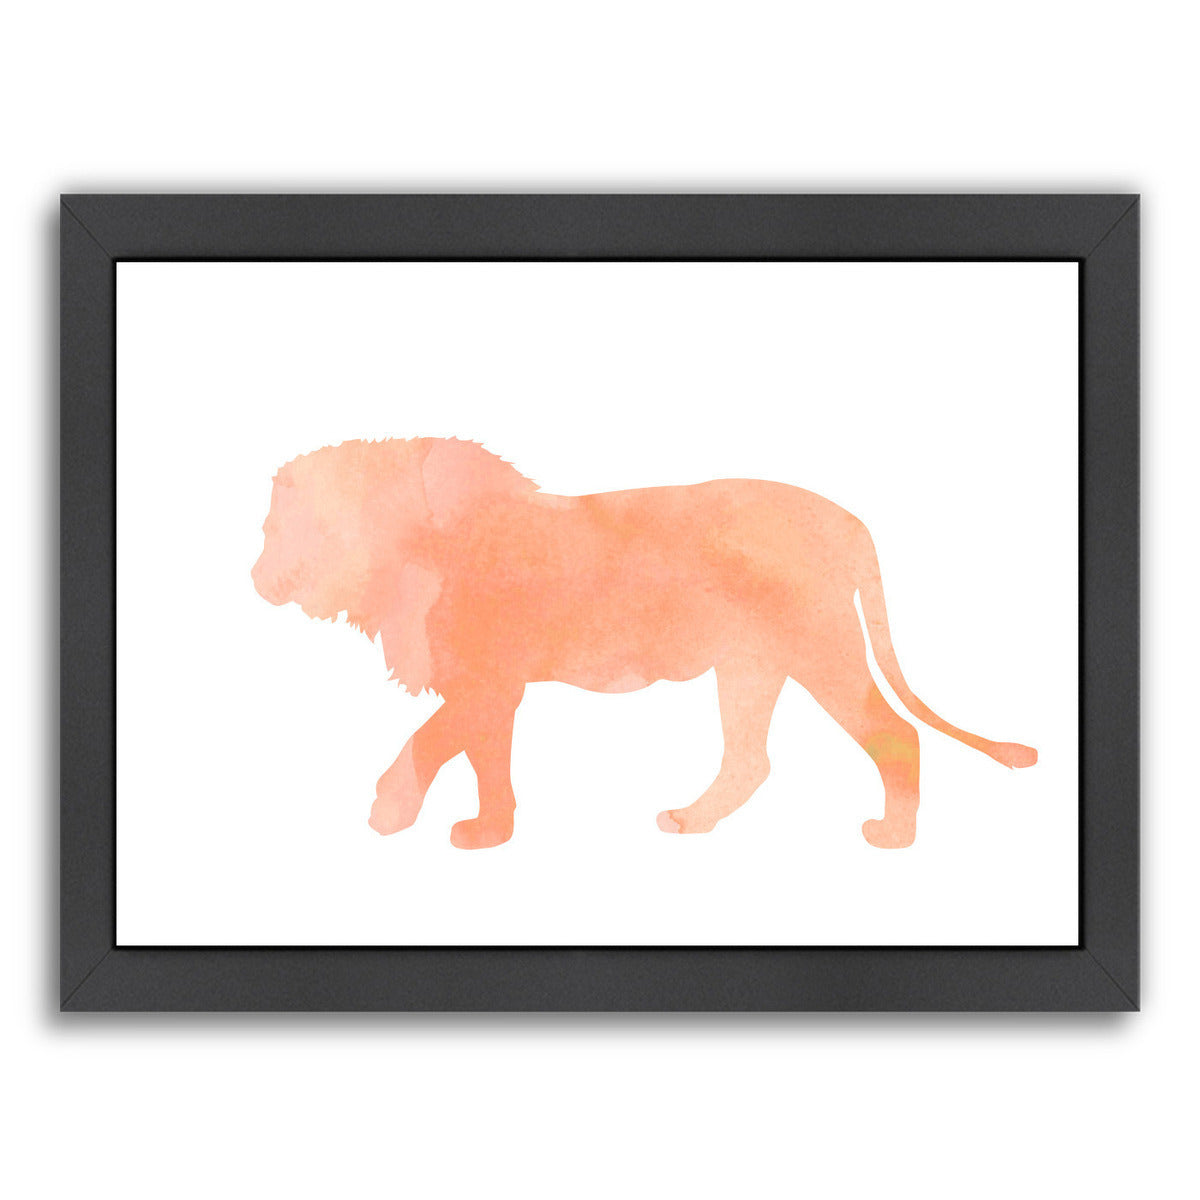 Coral Lion by Peach & Gold Framed Print - Wall Art - Americanflat